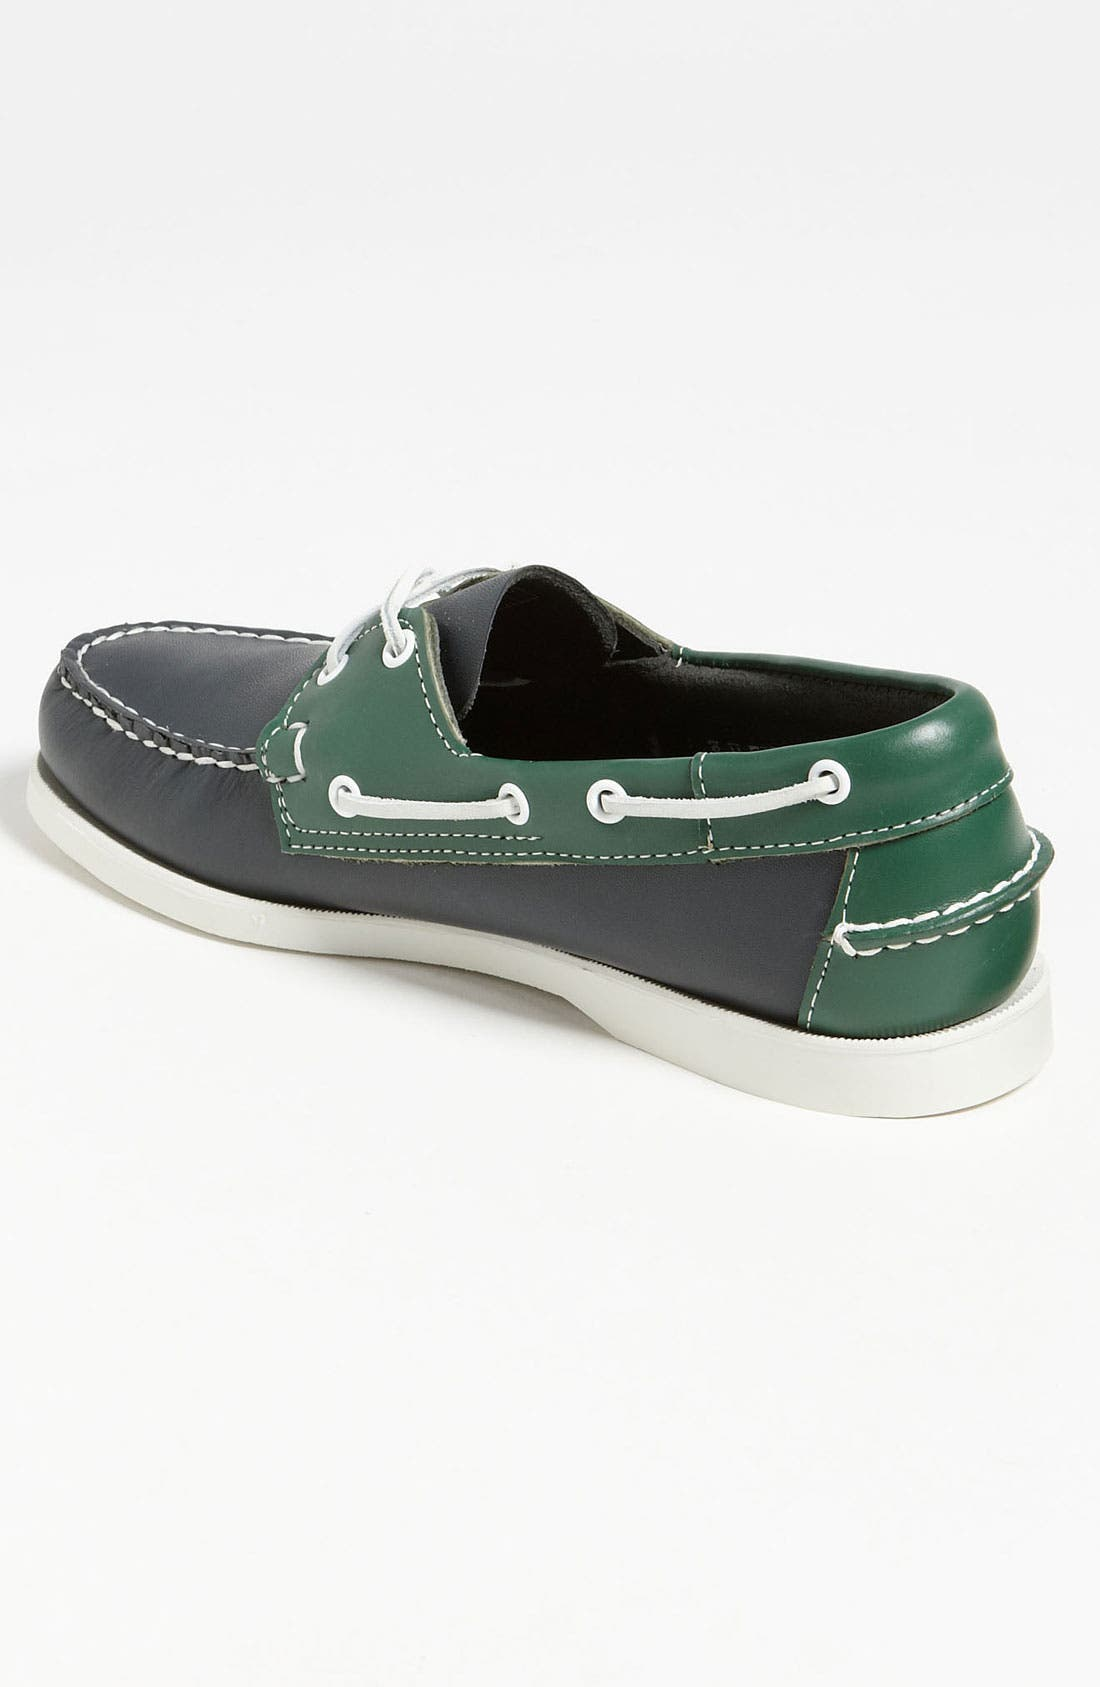 Alternate Image 2  - Sebago 'Spinnaker' Boat Shoe